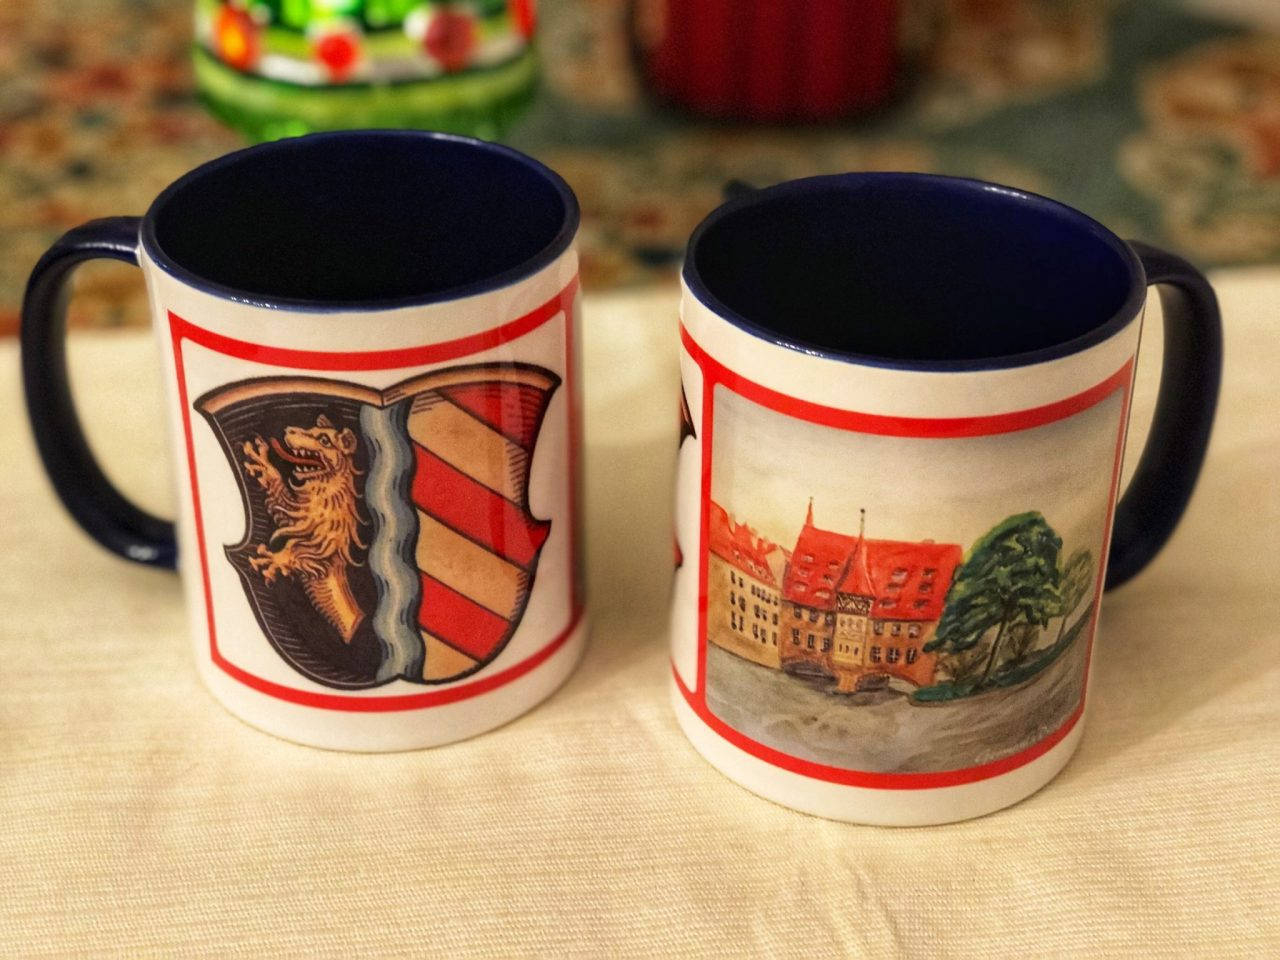 Nuernberg Watercolor mug with Coat of Arms with Coat of Arms, GermaniaDesign.com